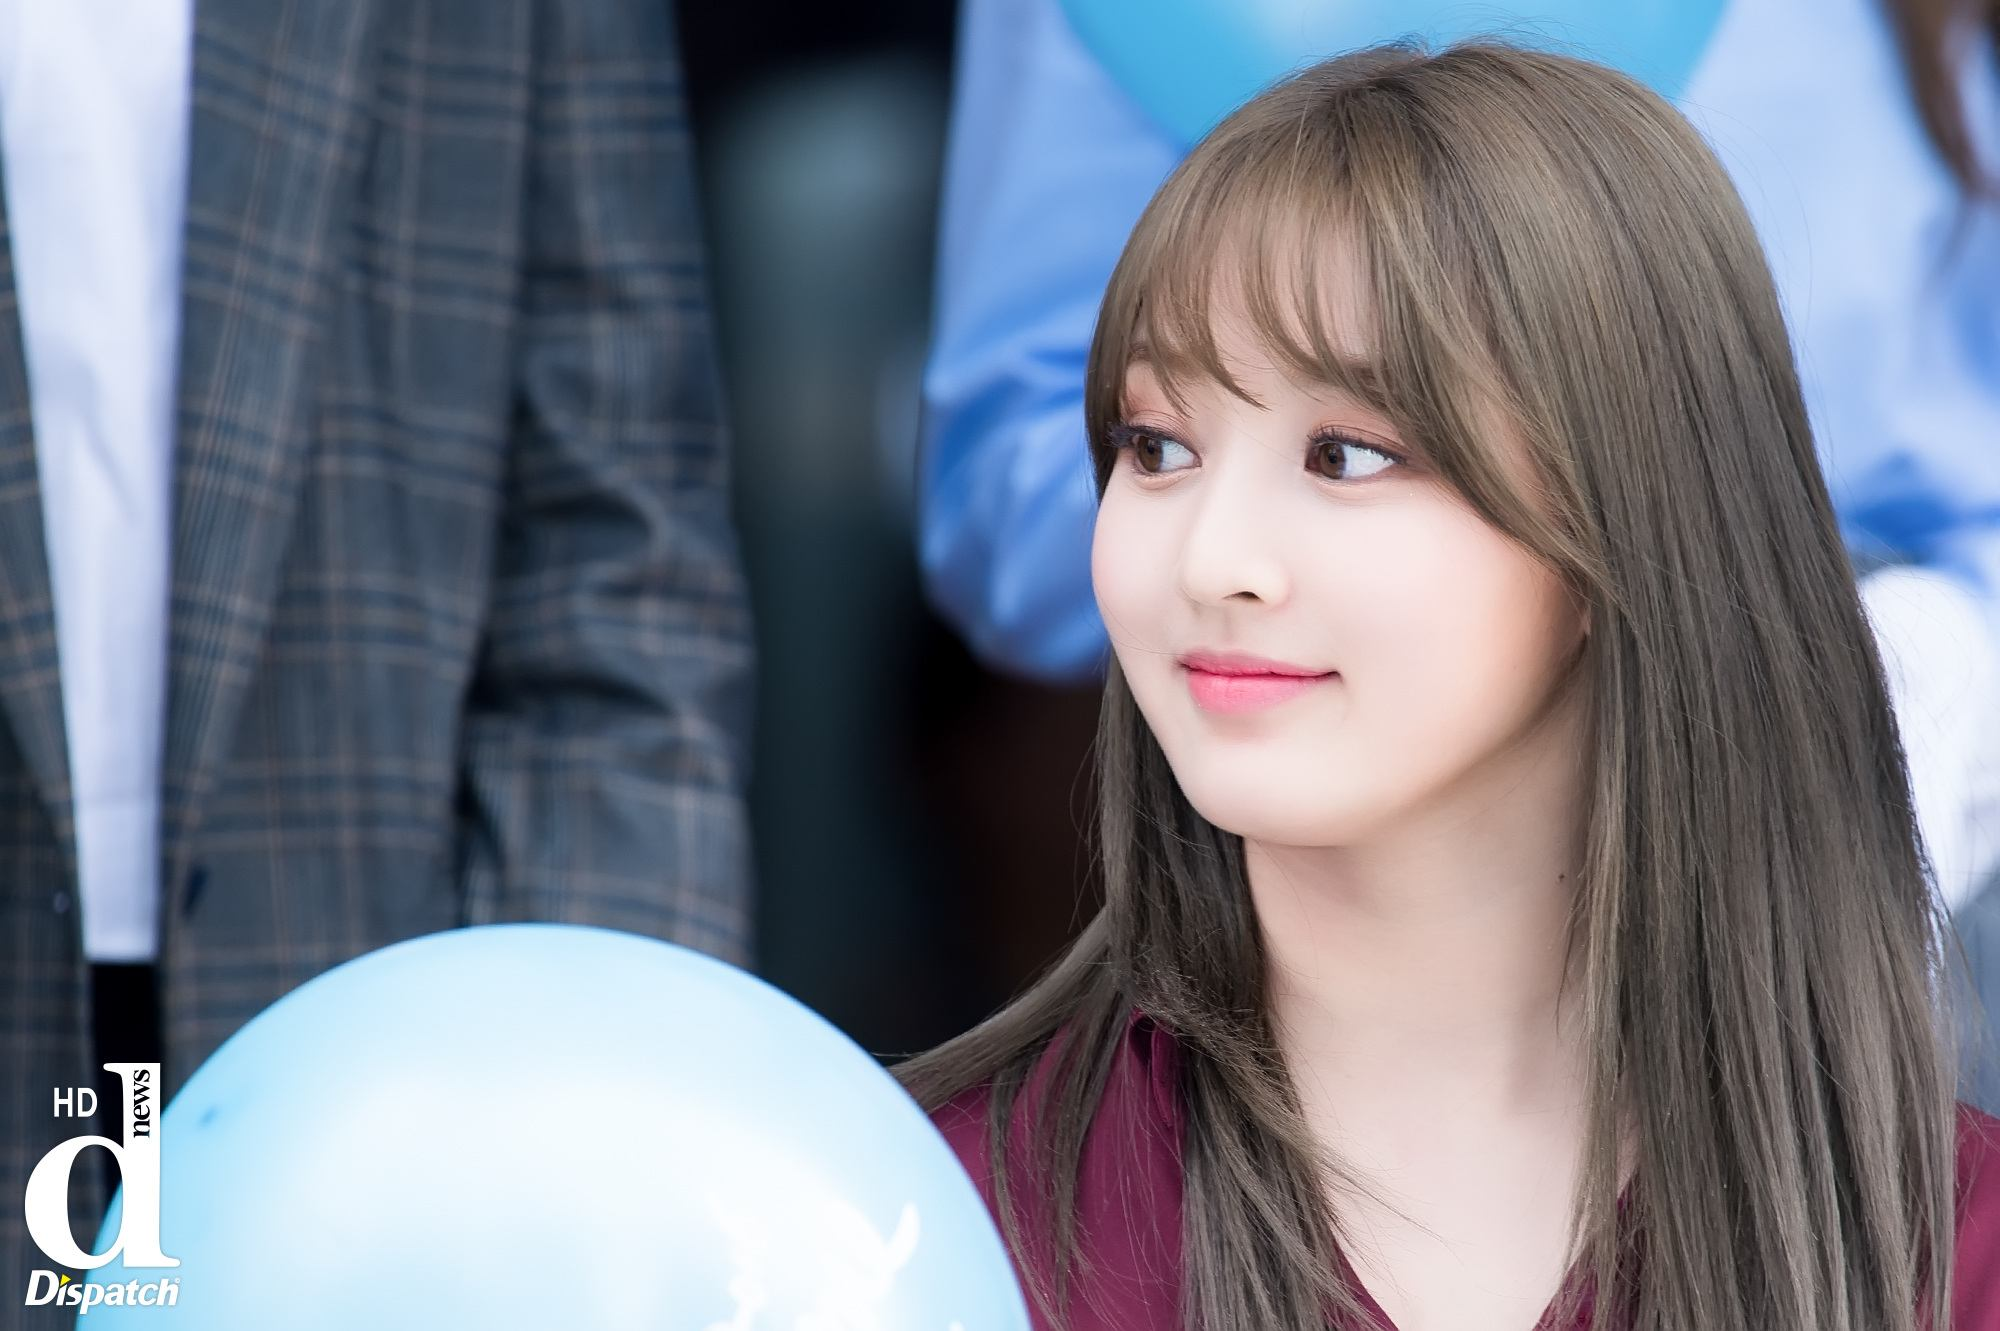 Pretty Anime Wallpaper Baby Pictures Of Twice Jihyo Goes Viral For Her Beauty